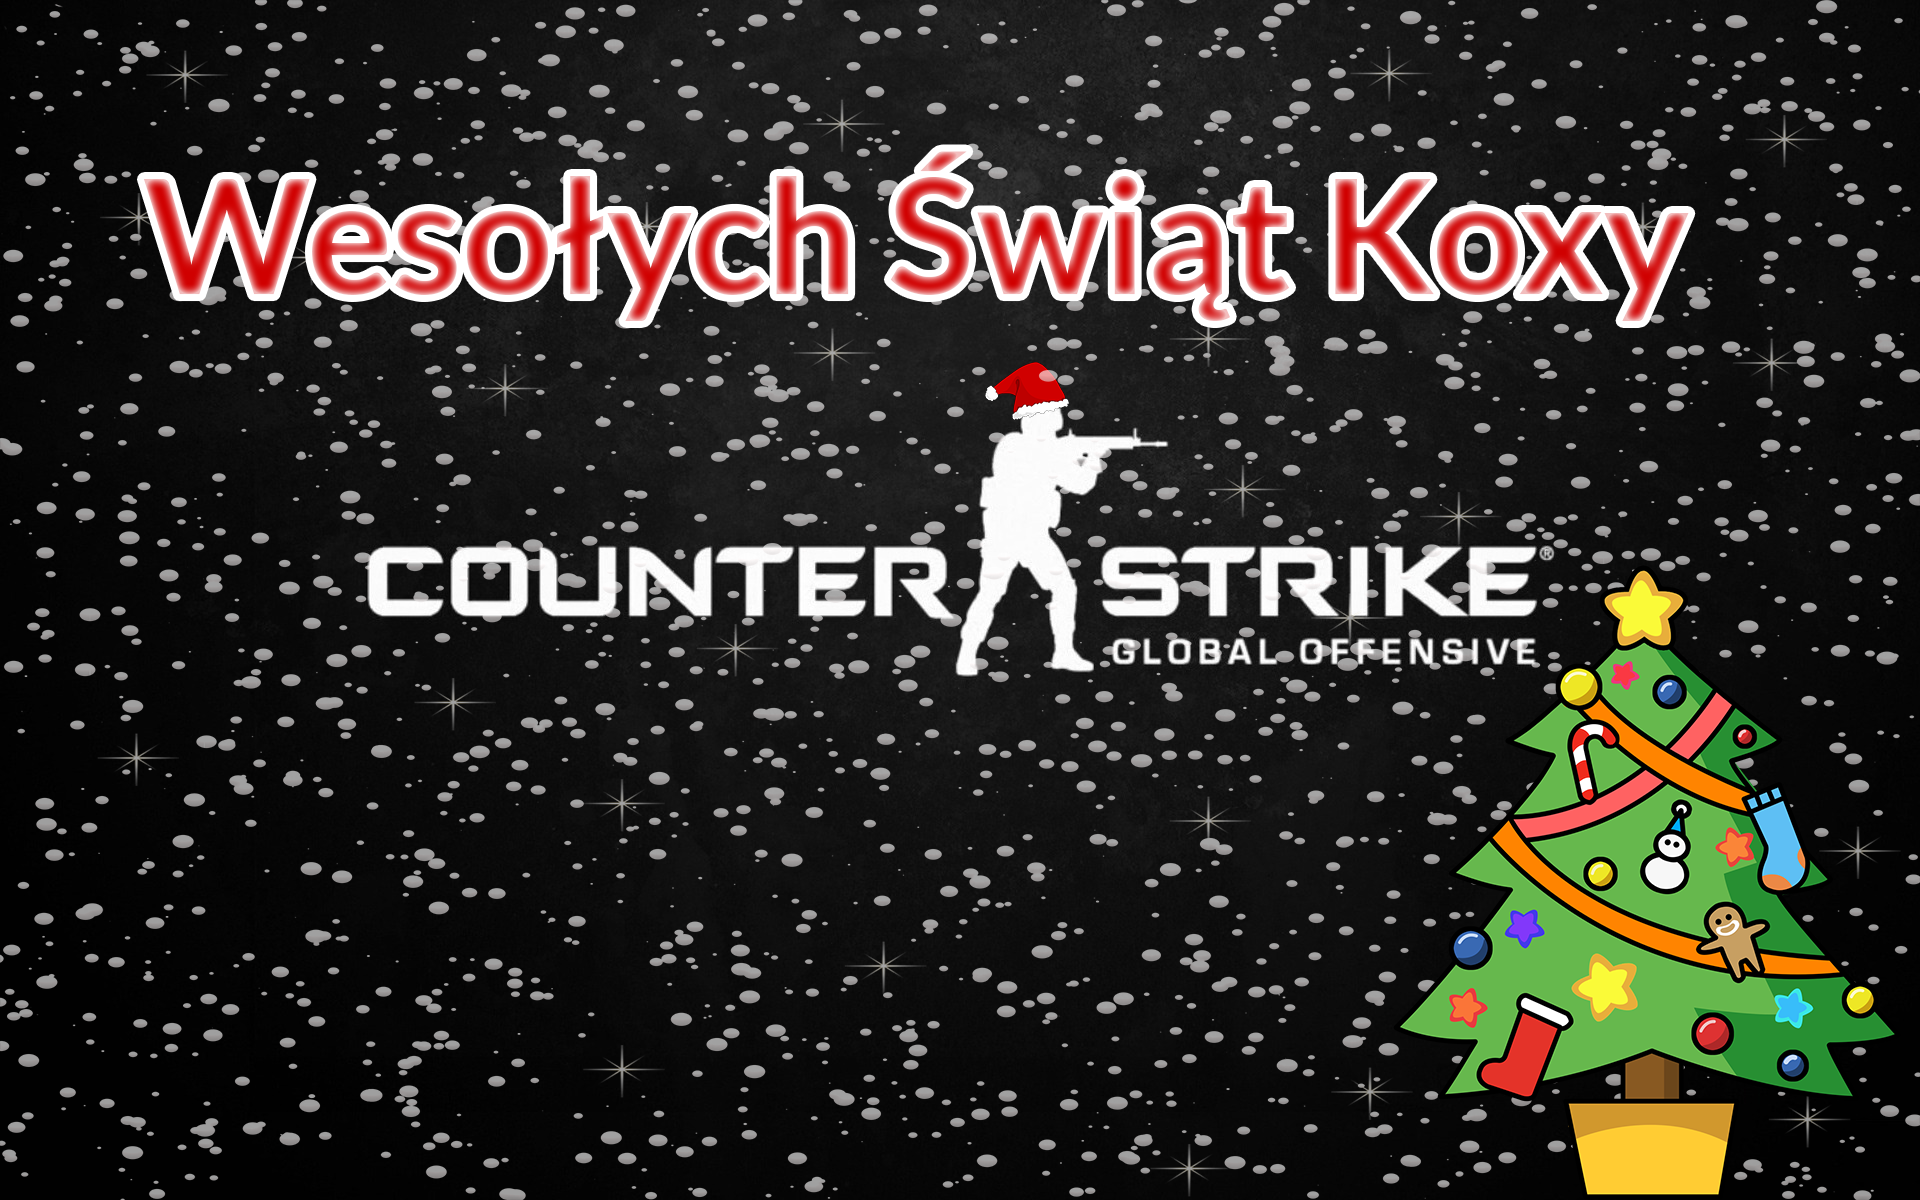 https://inetkox.pl/wp-content/uploads/2015/12/wesolych_swiat.png